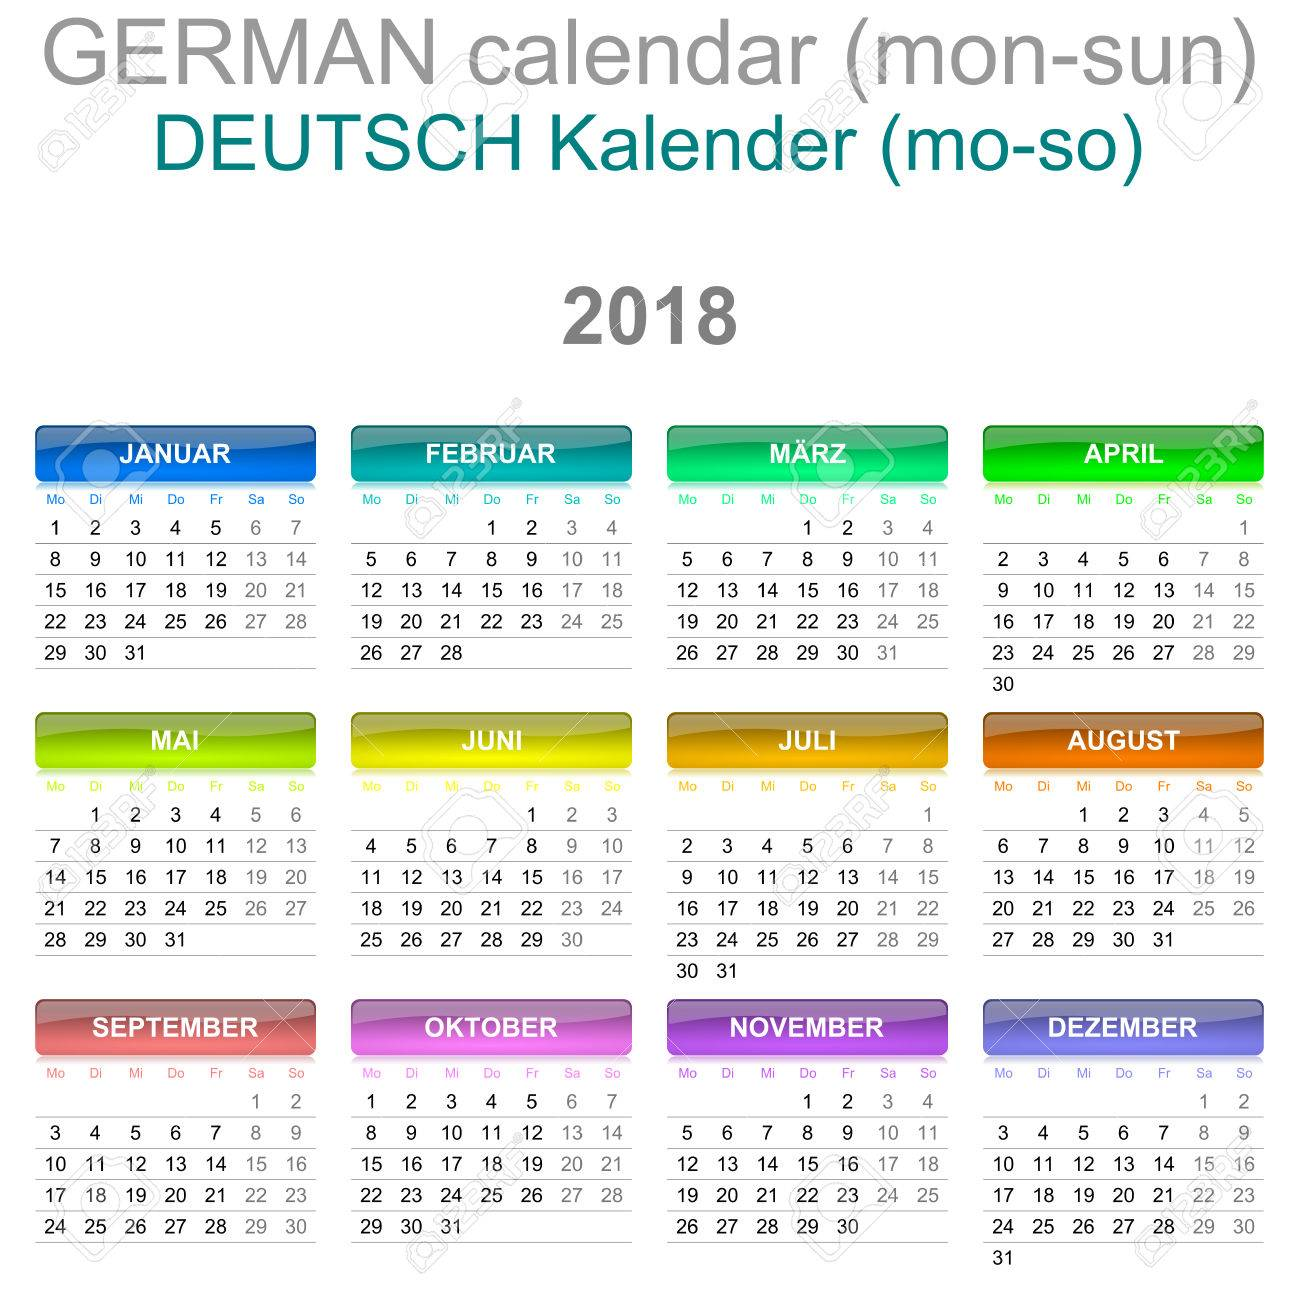 colorful monday to sunday 2018 calendar german language version illustration stock illustration 78017691